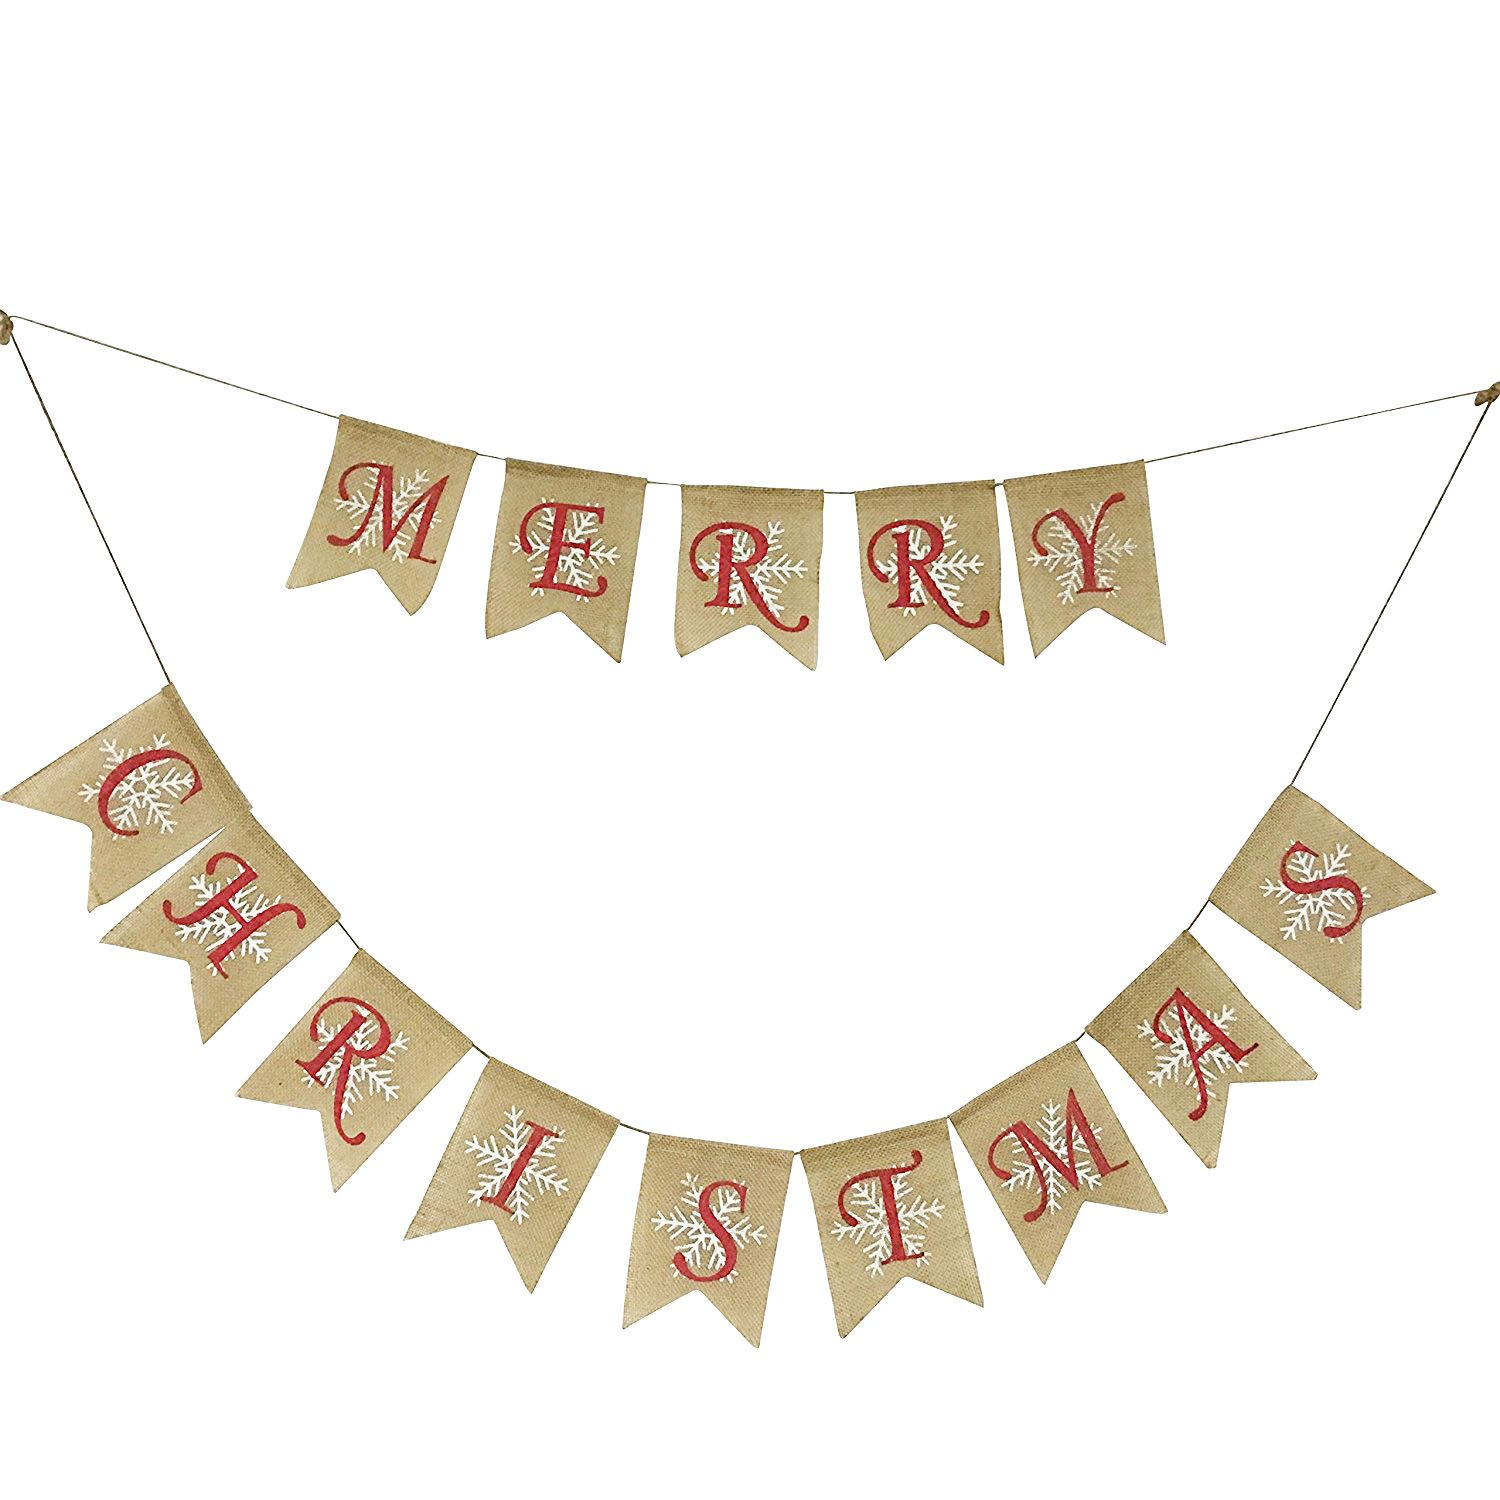 Partyprops Natural Jute Burlap Merry Christmas Garlands Banner for Holiday Decoration, Displaying and Embellishing